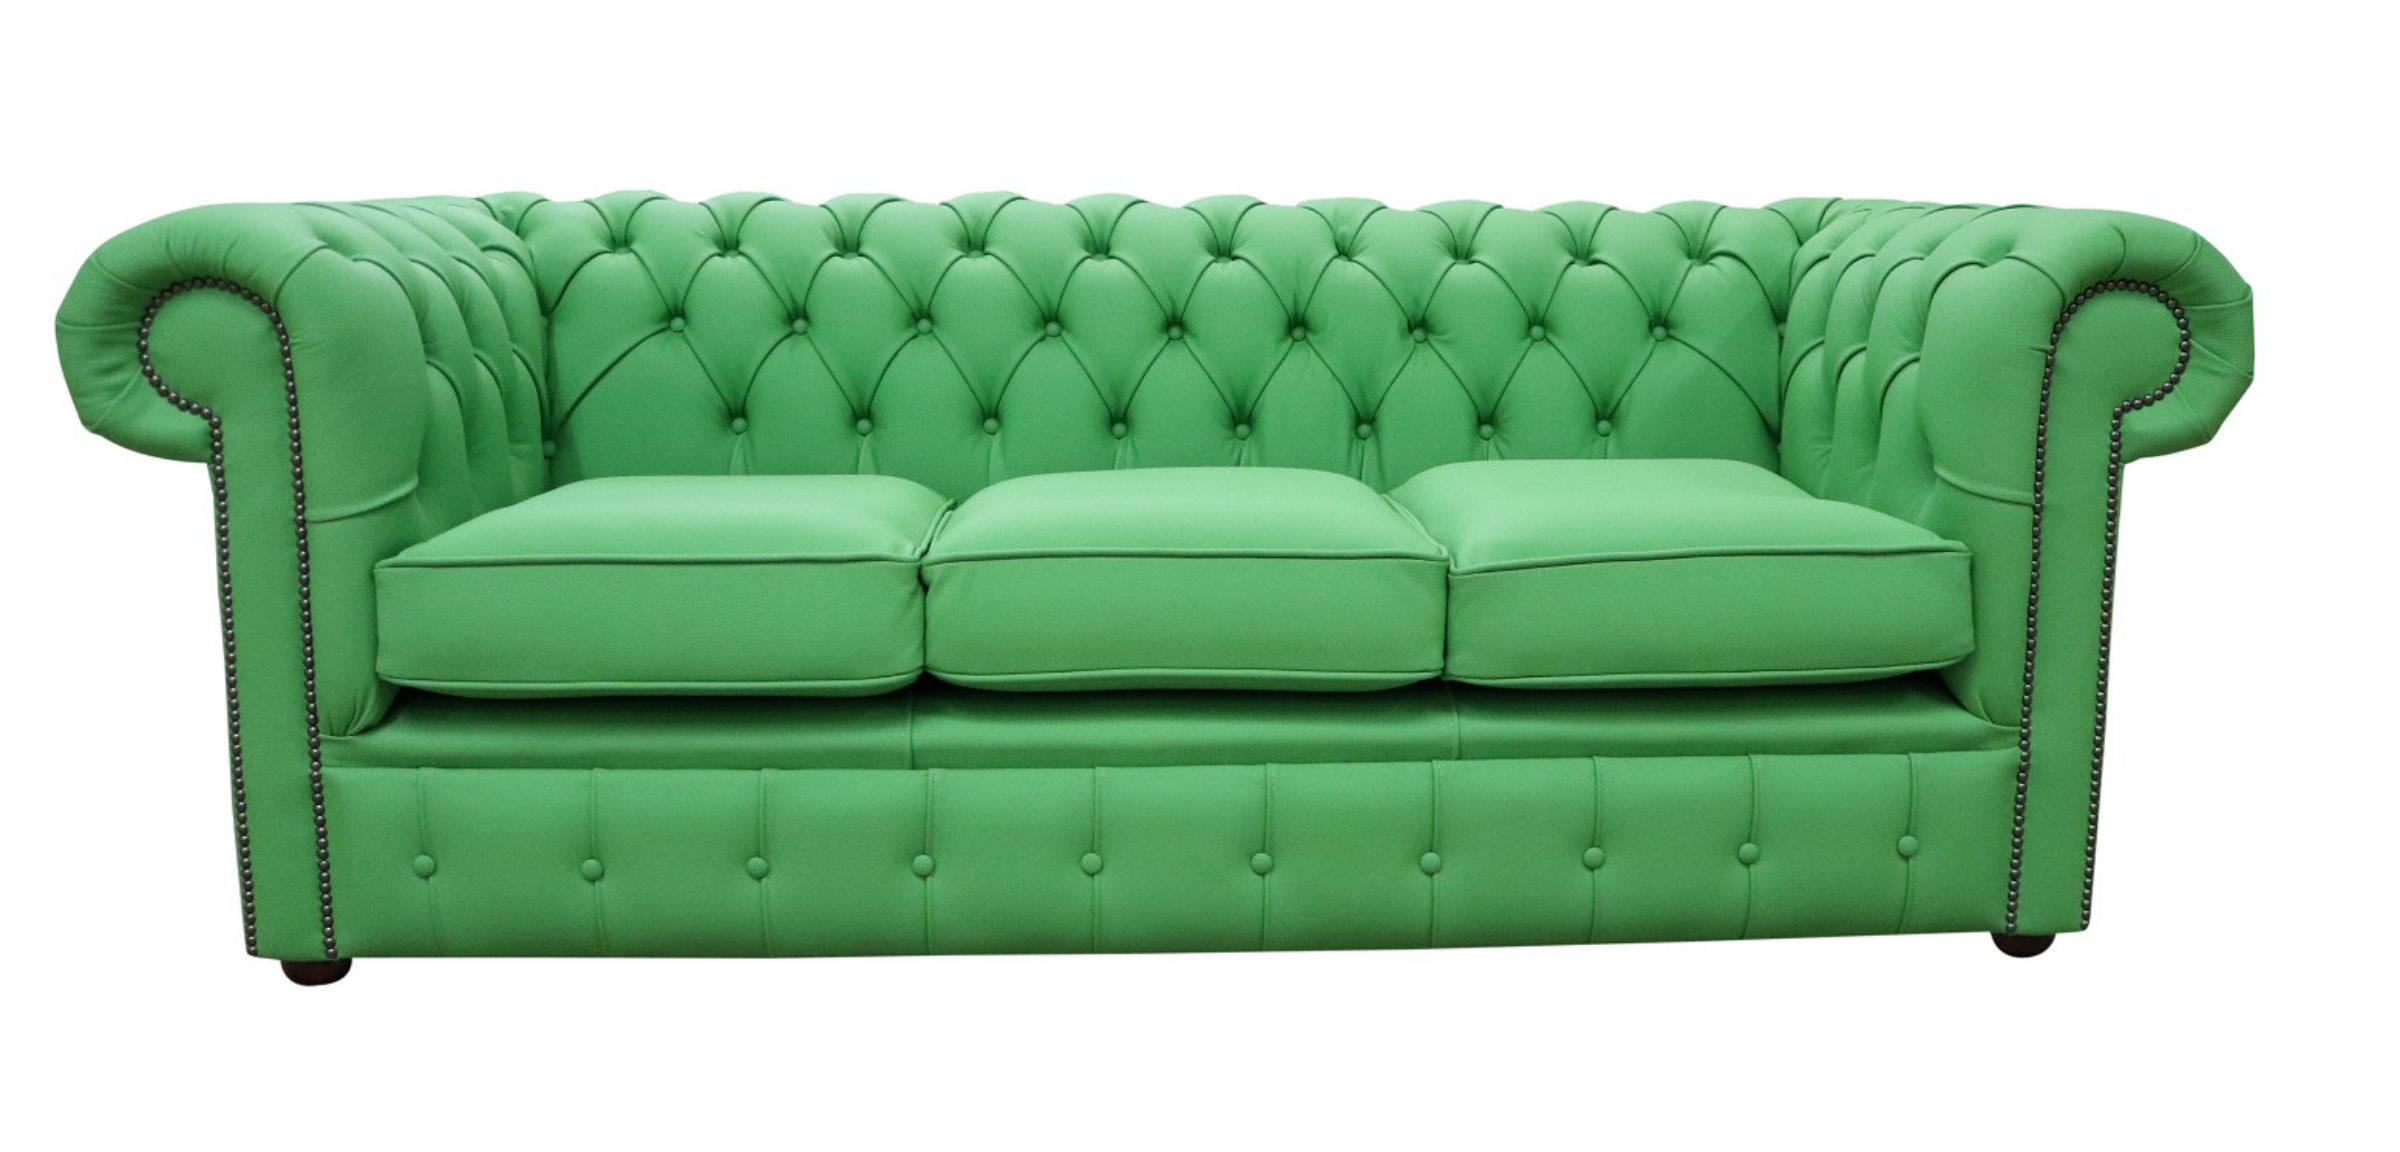 Apple Green Chesterfield 3 Seater Settee Sofa